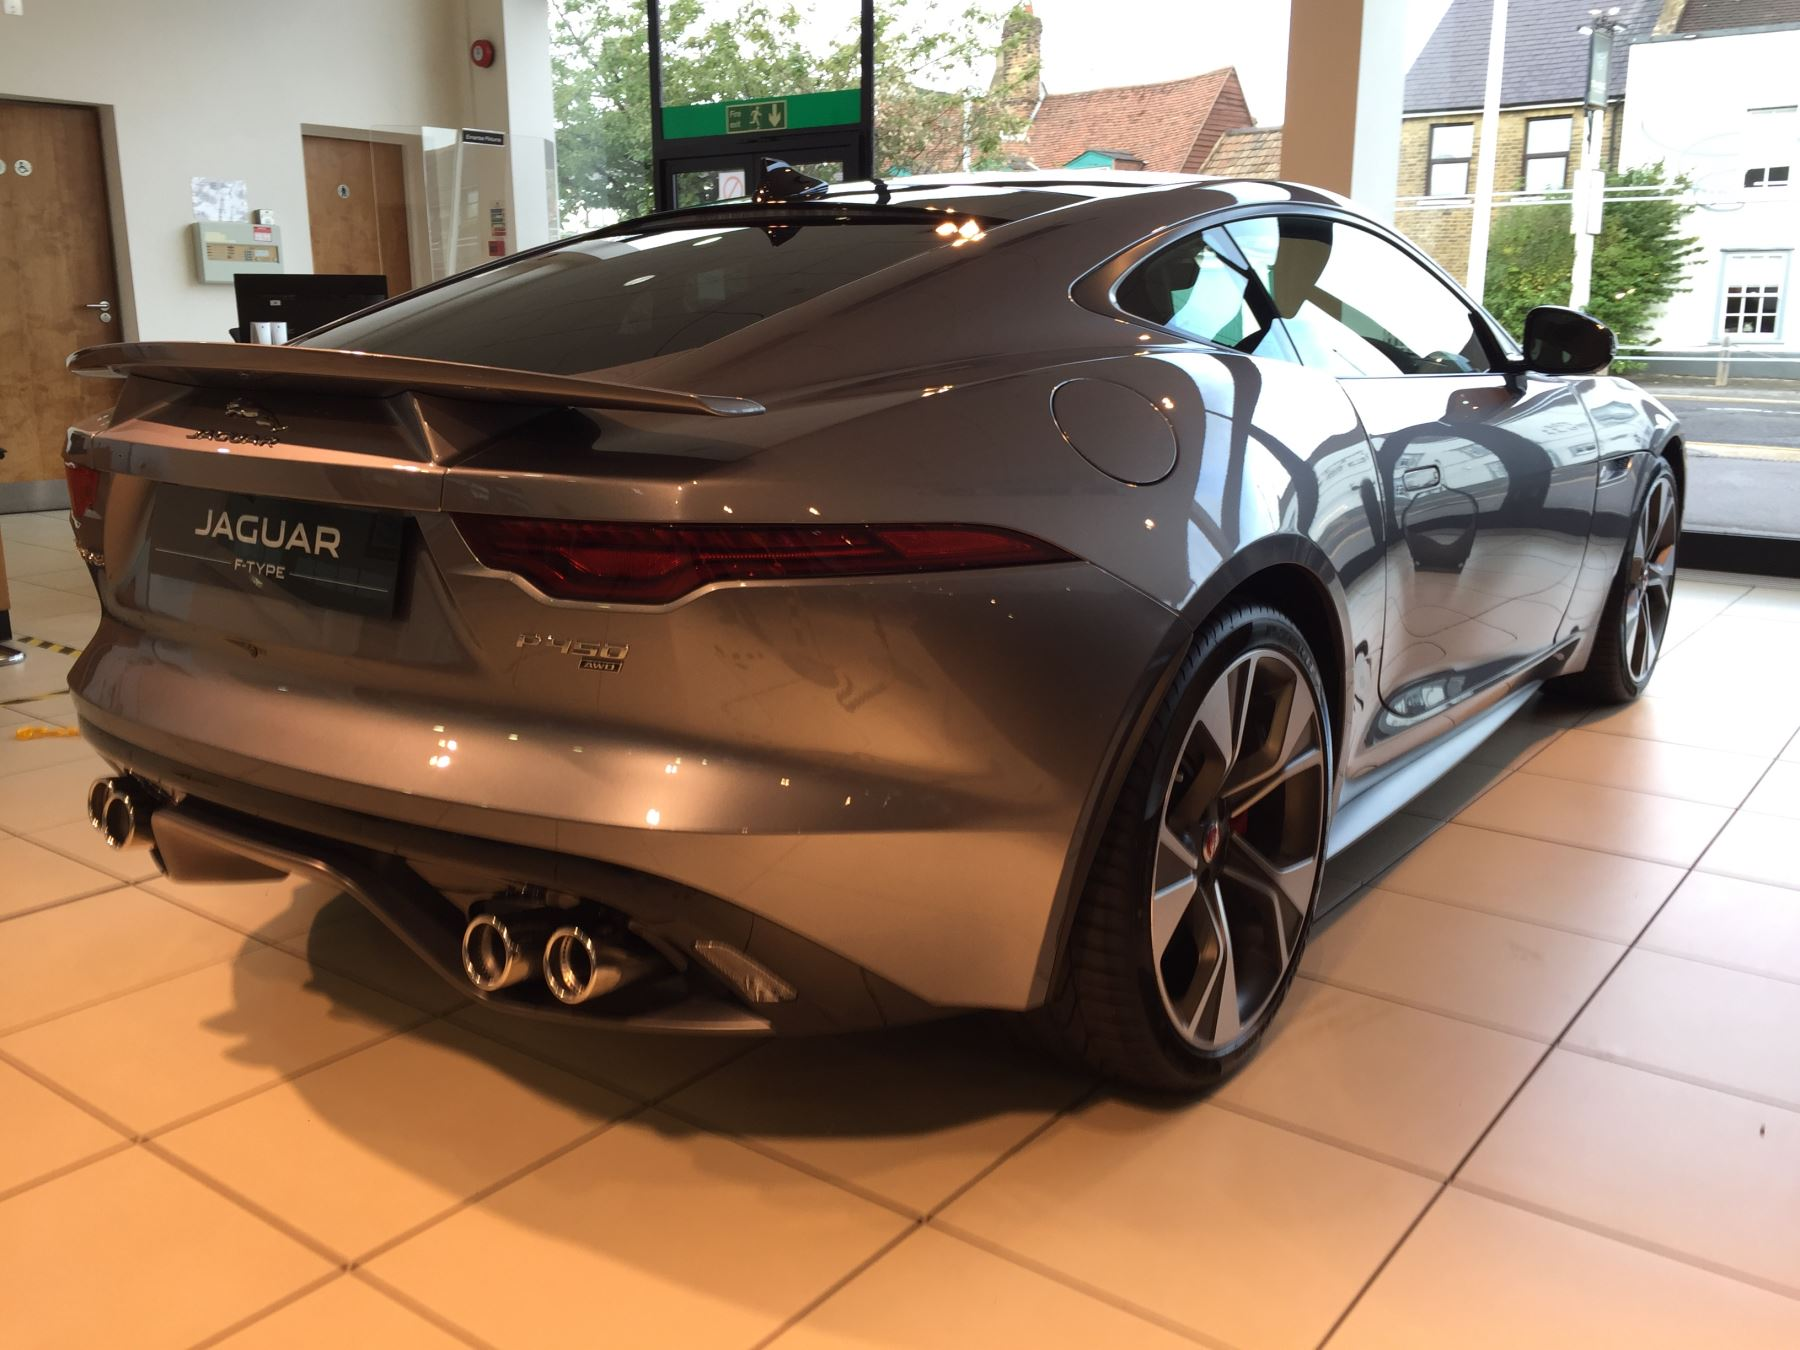 Jaguar F-TYPE 5.0 P450 Supercharged V8 First Edition SPECIAL EDITIONS image 2